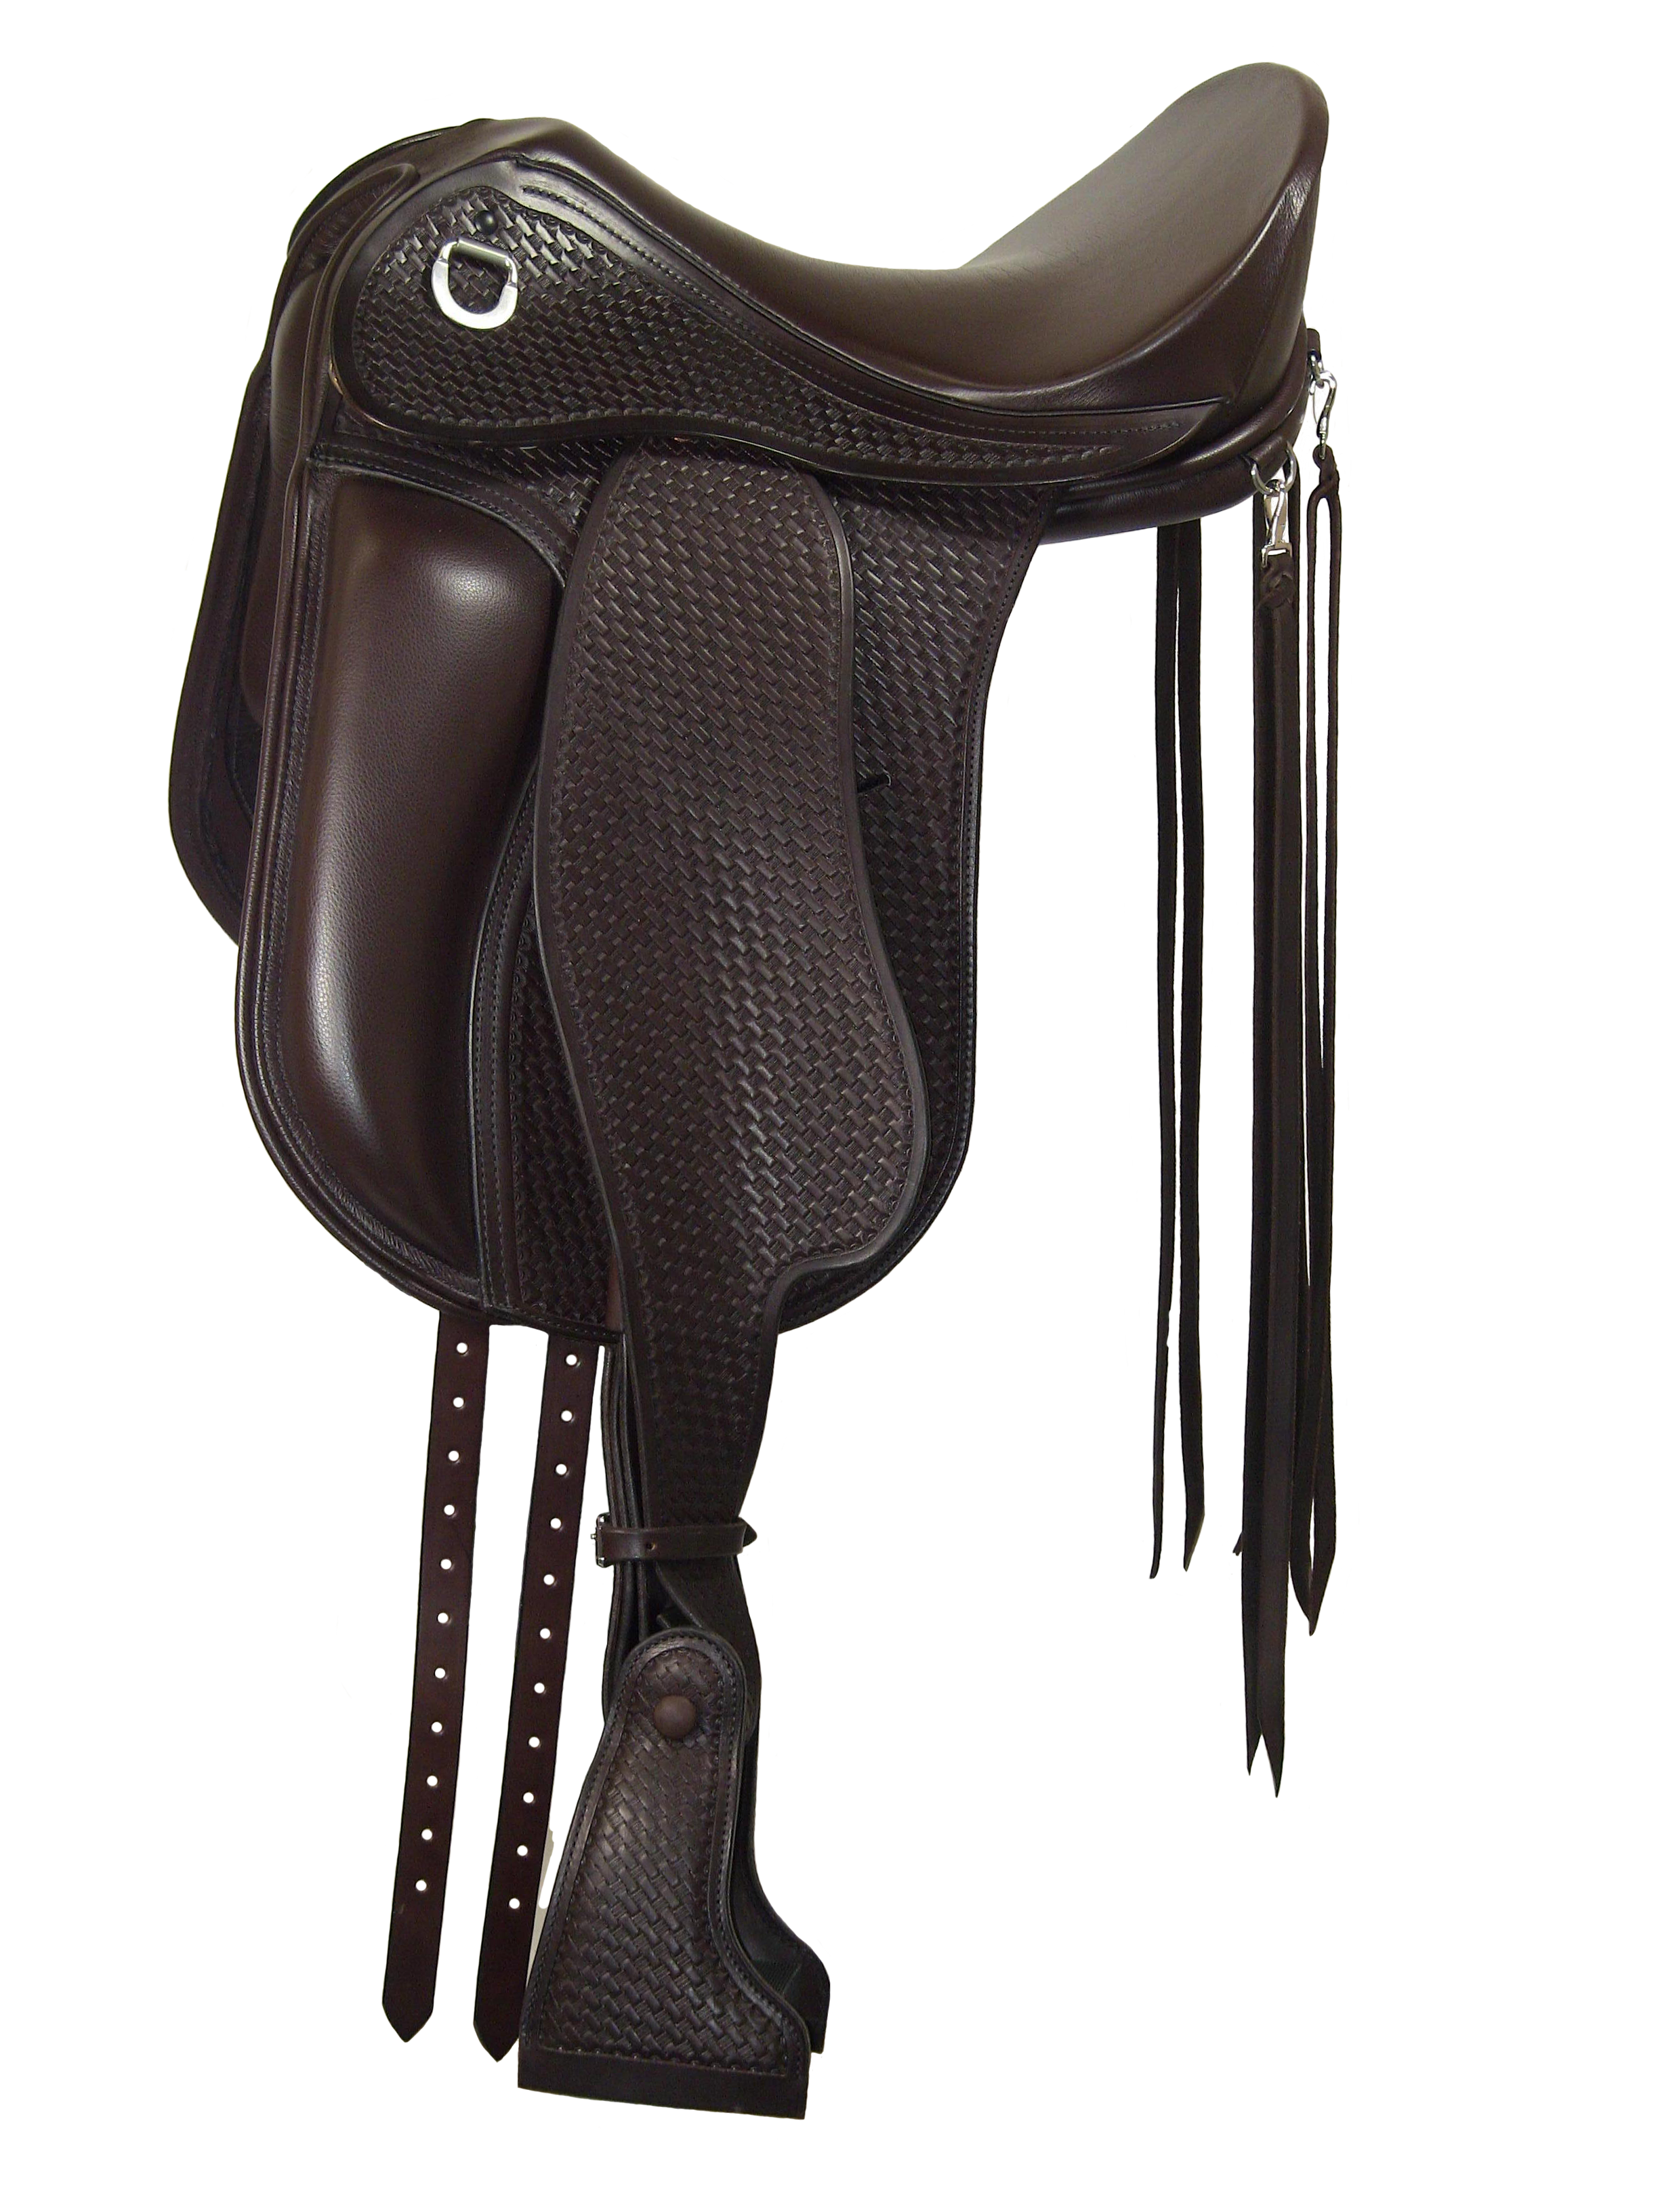 Ansur Crossover treeless saddle #GB27FBH